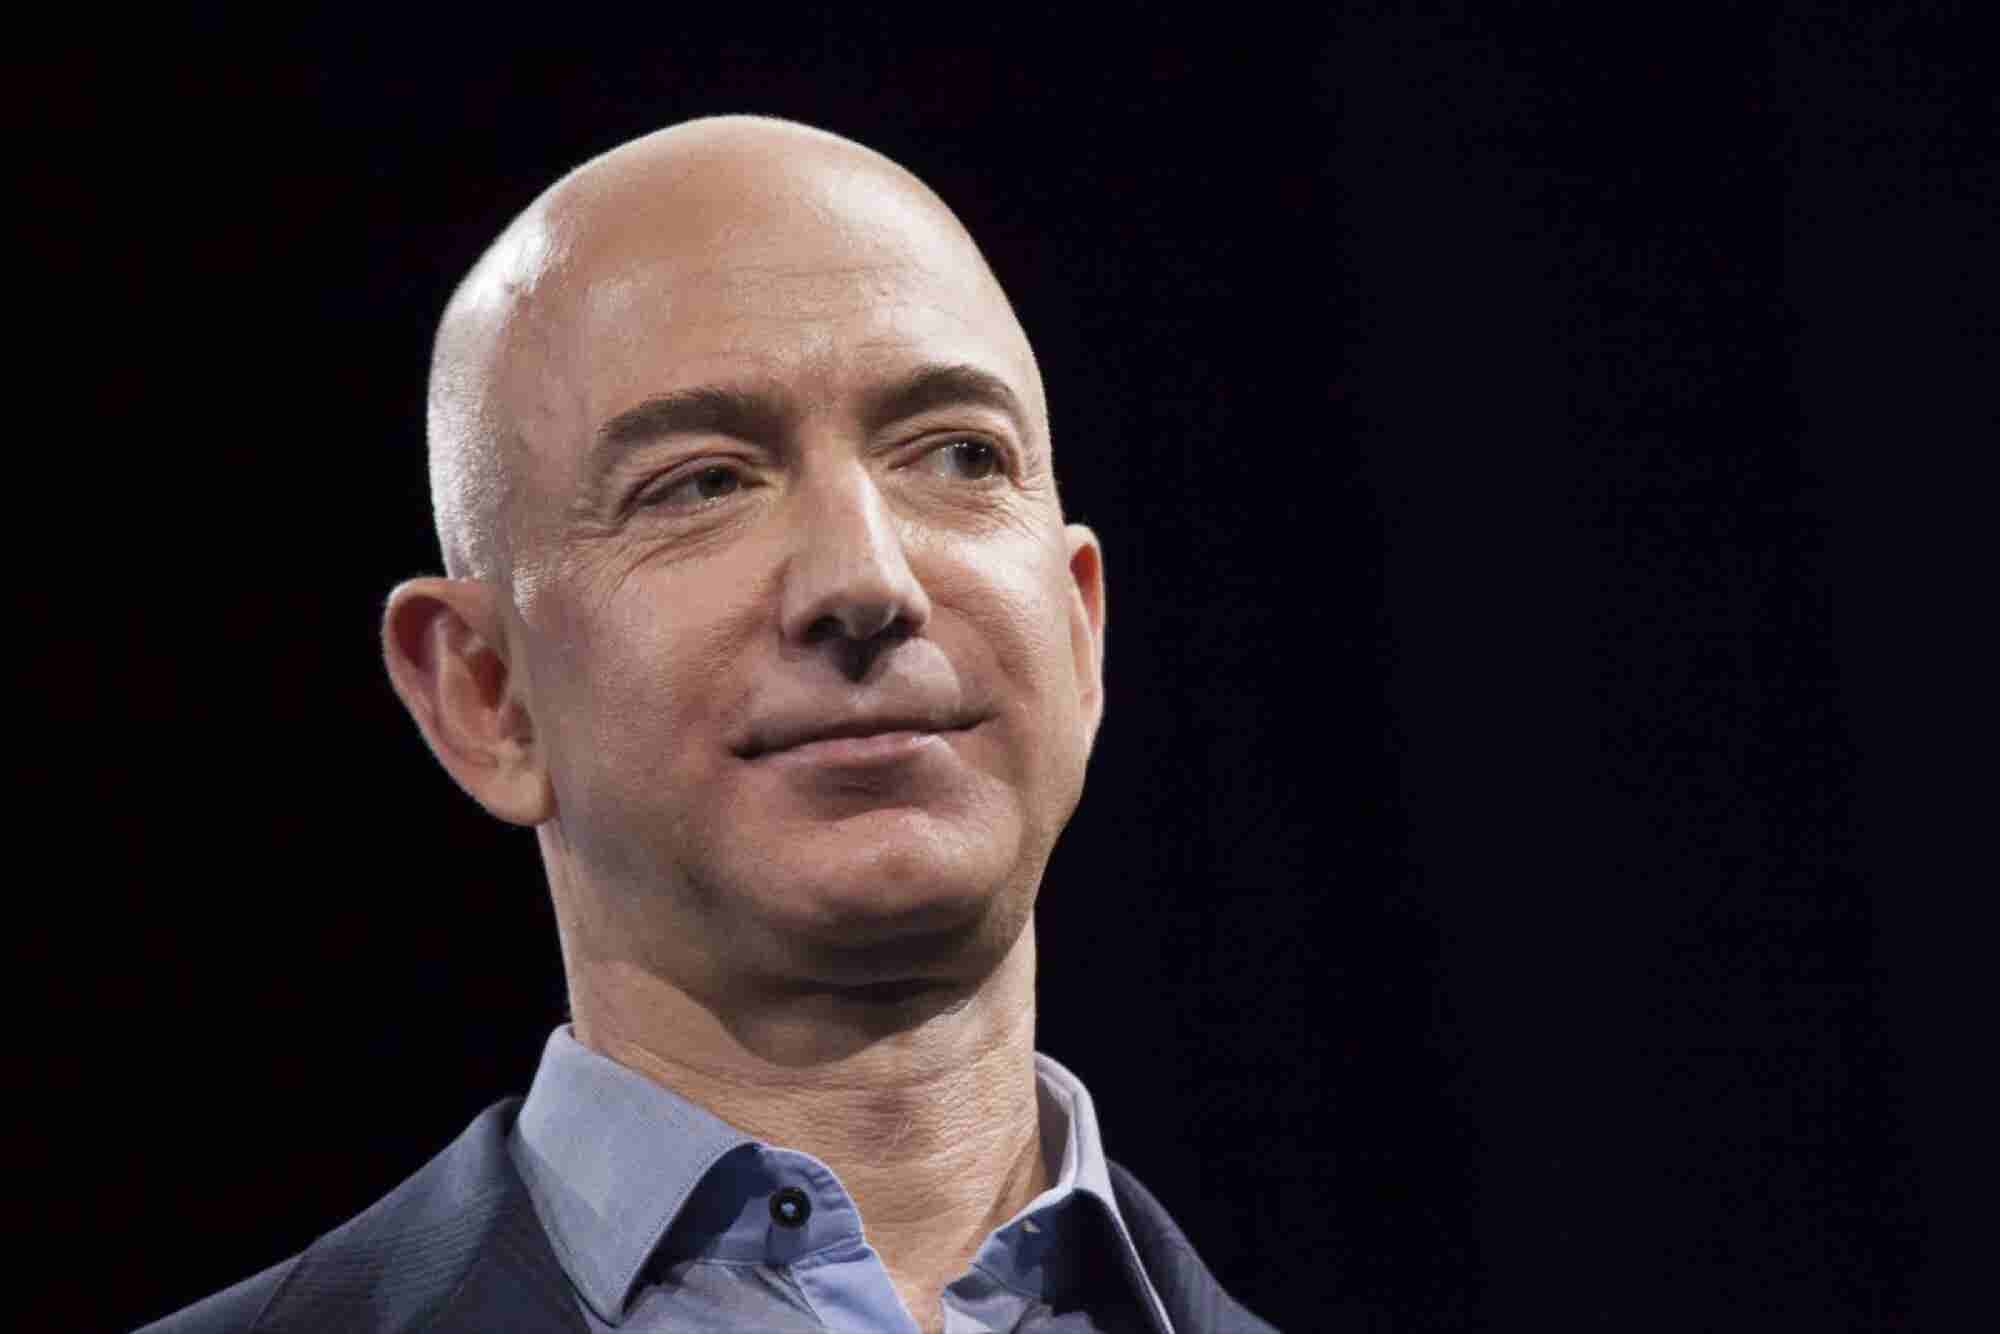 Jeff Bezos Reveals His Daily Decision-Making Goal and 30 Other Crazy T...